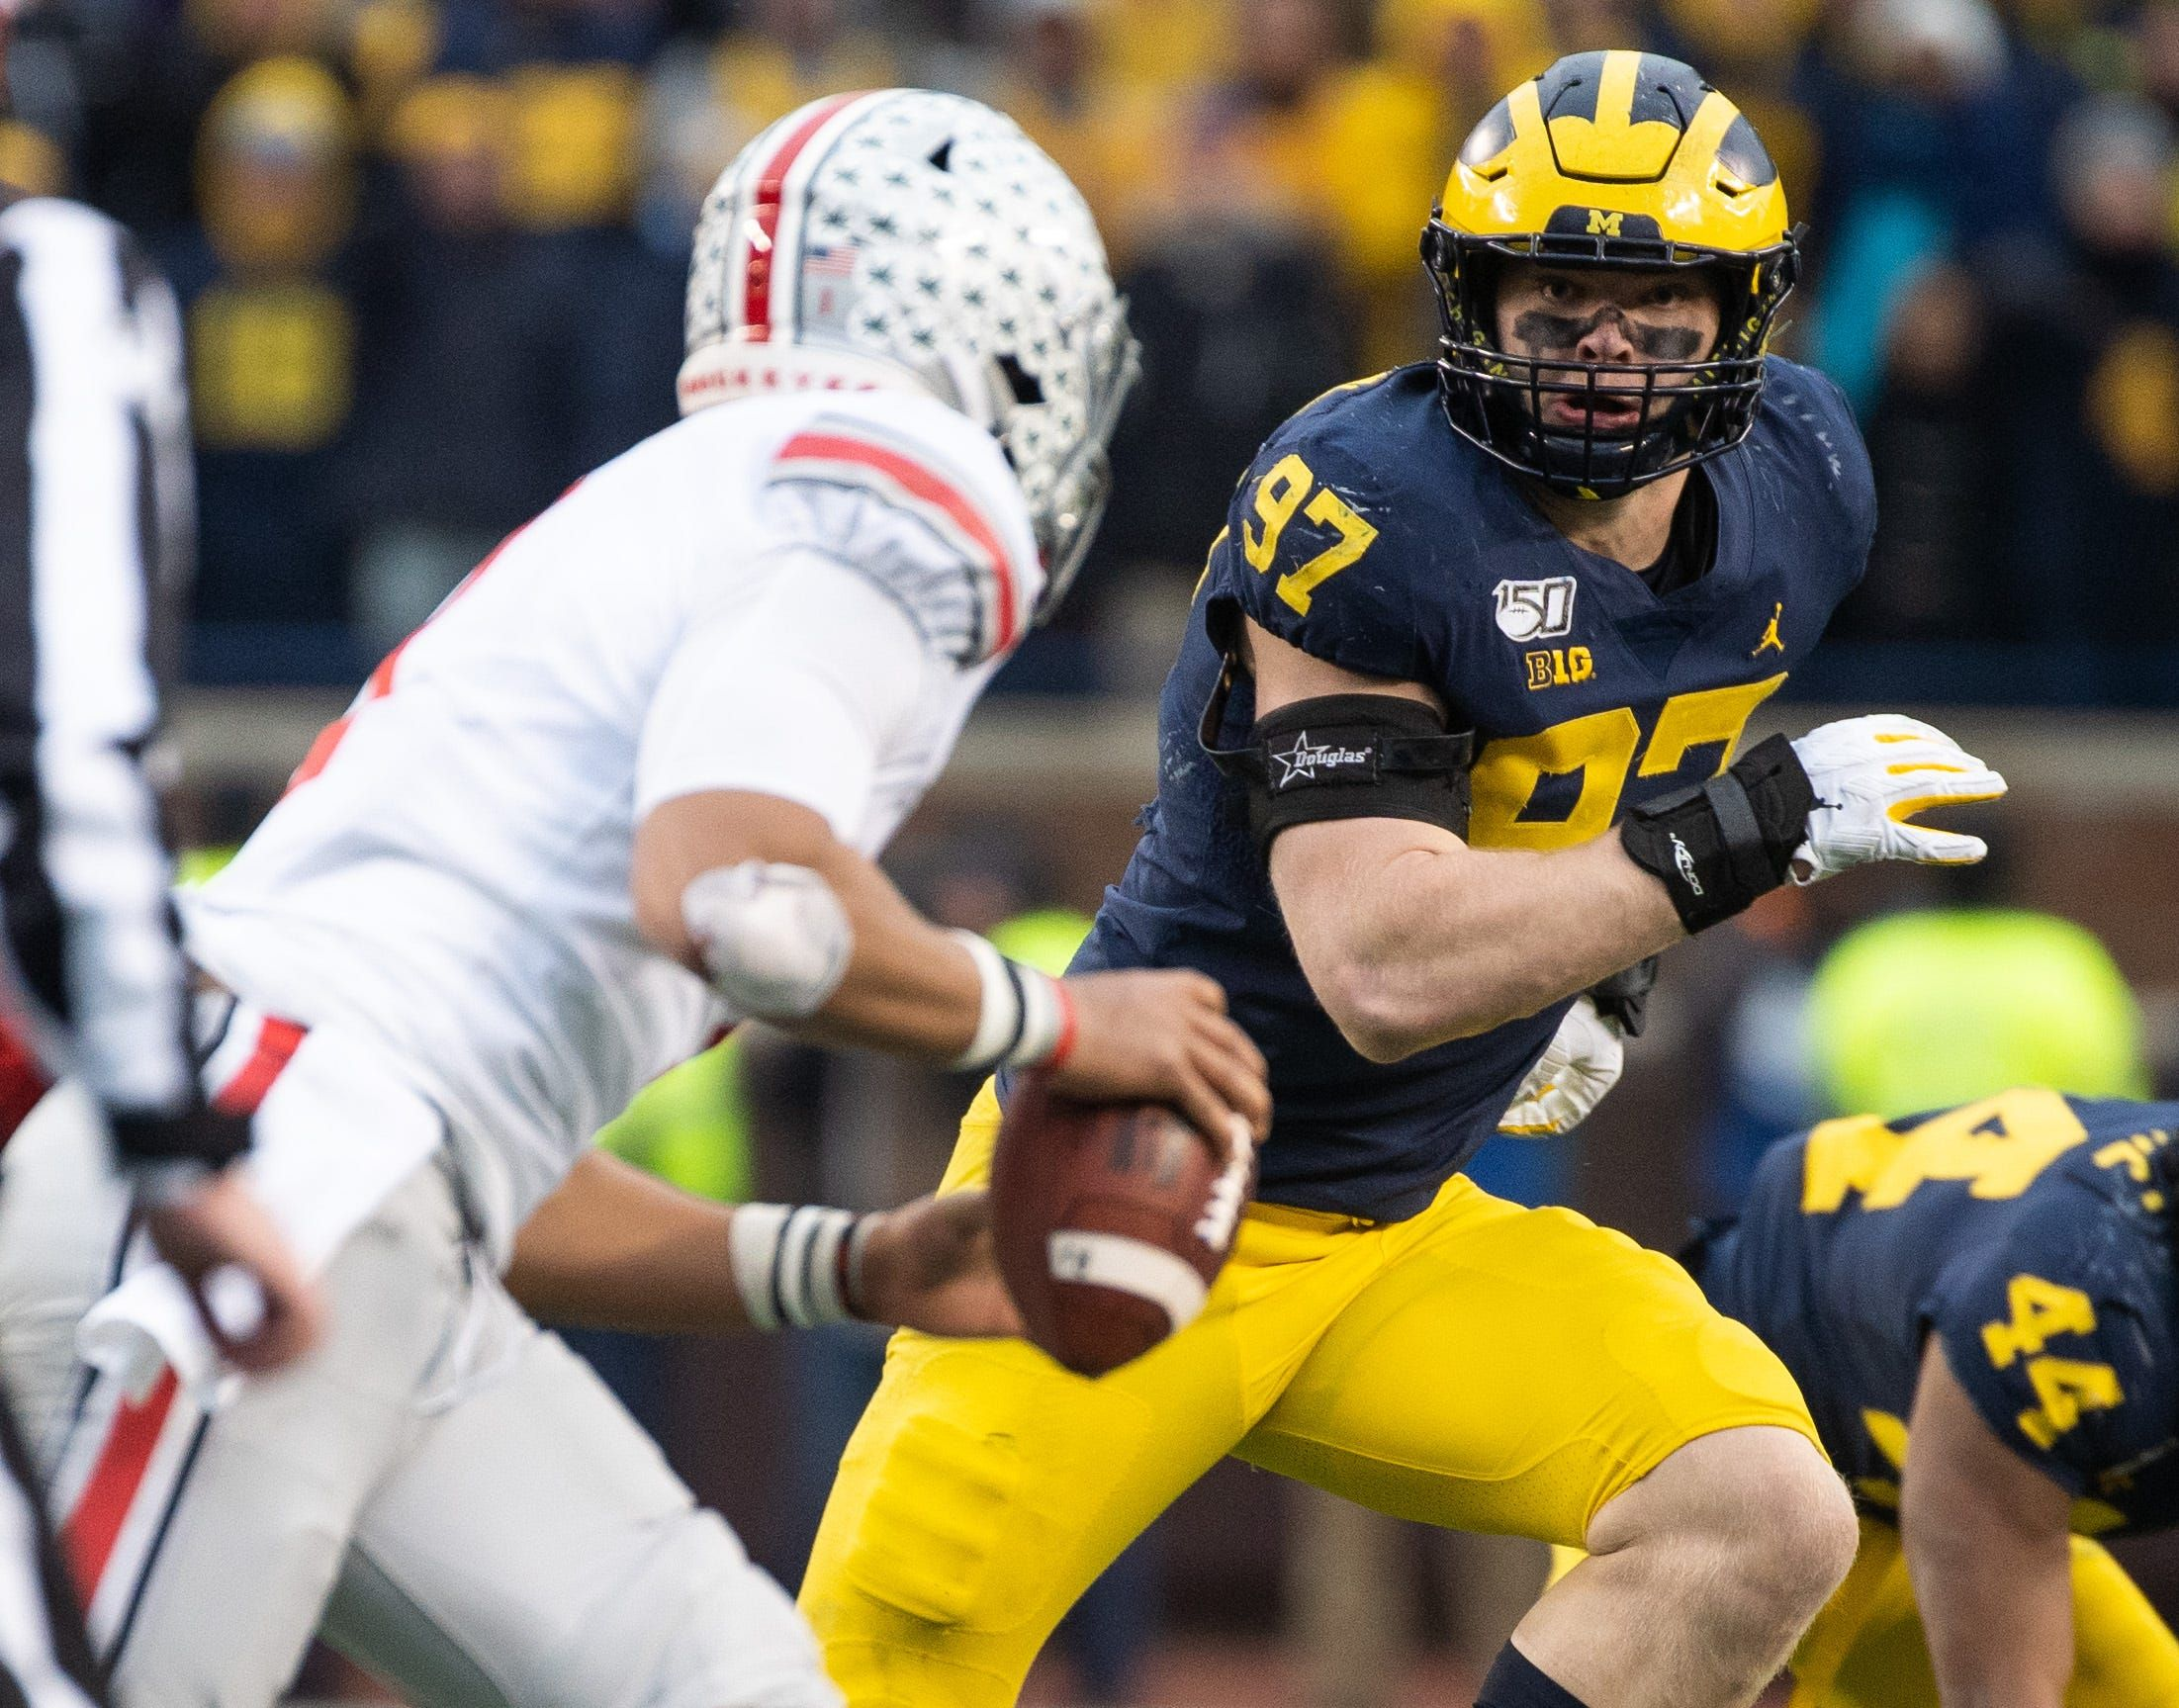 Michigan football's defensive line has Hutchinson and Paye